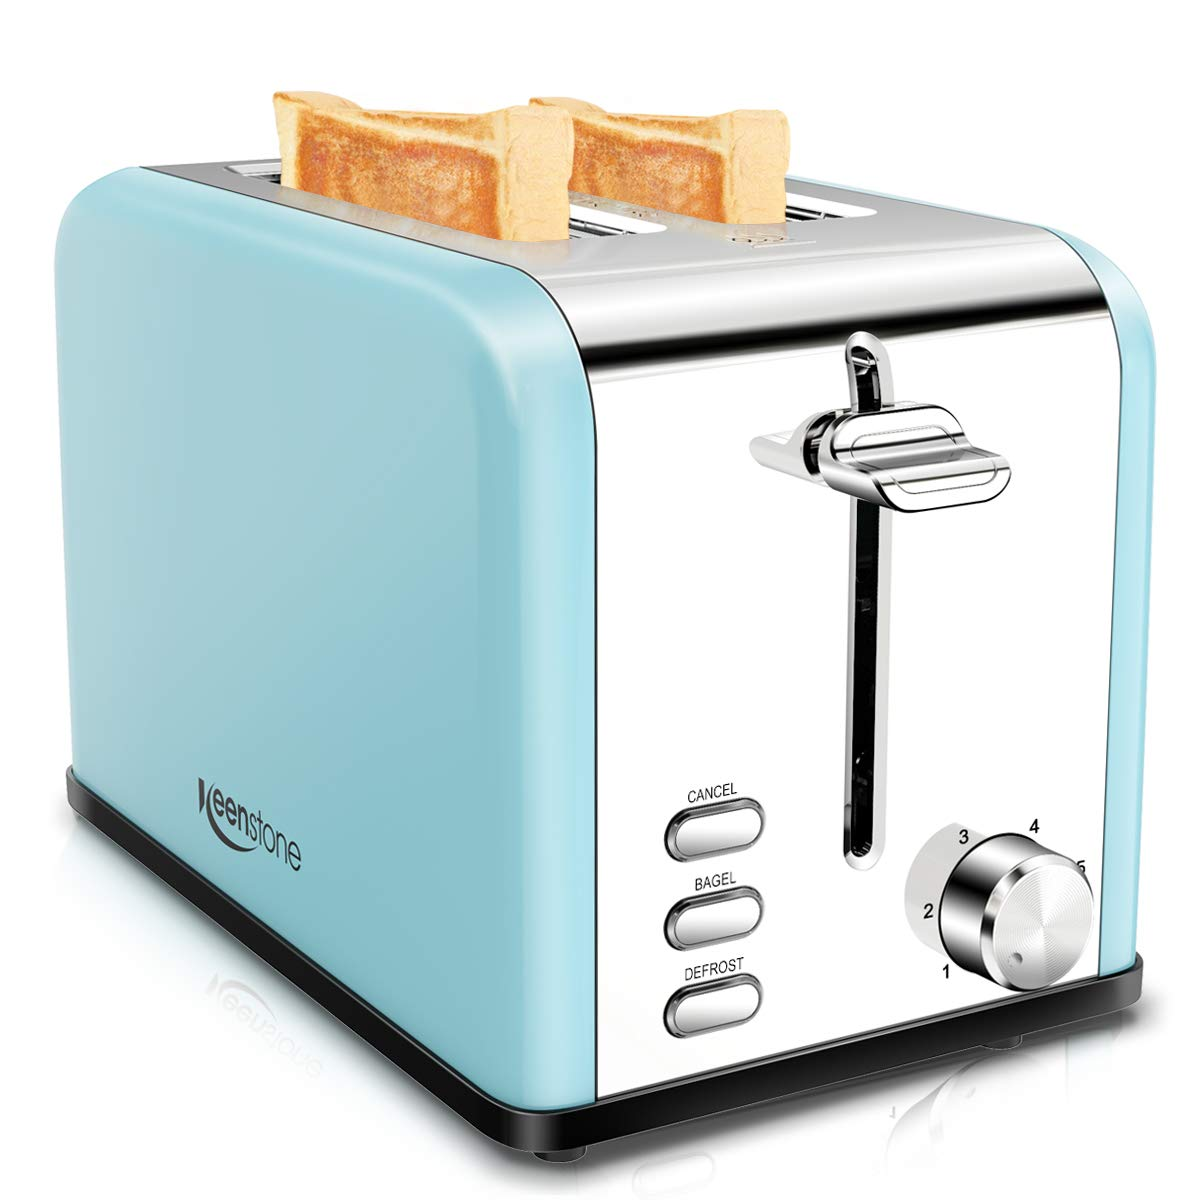 Toaster 2 Slice, Keenstone Retro Toaster with Cancel, Bagel, Defrost Function and 6 Browning Settings 1.5 Inch Extra Wide Slot Stainless Steel Toaster with Removable Crumb Tray Blue